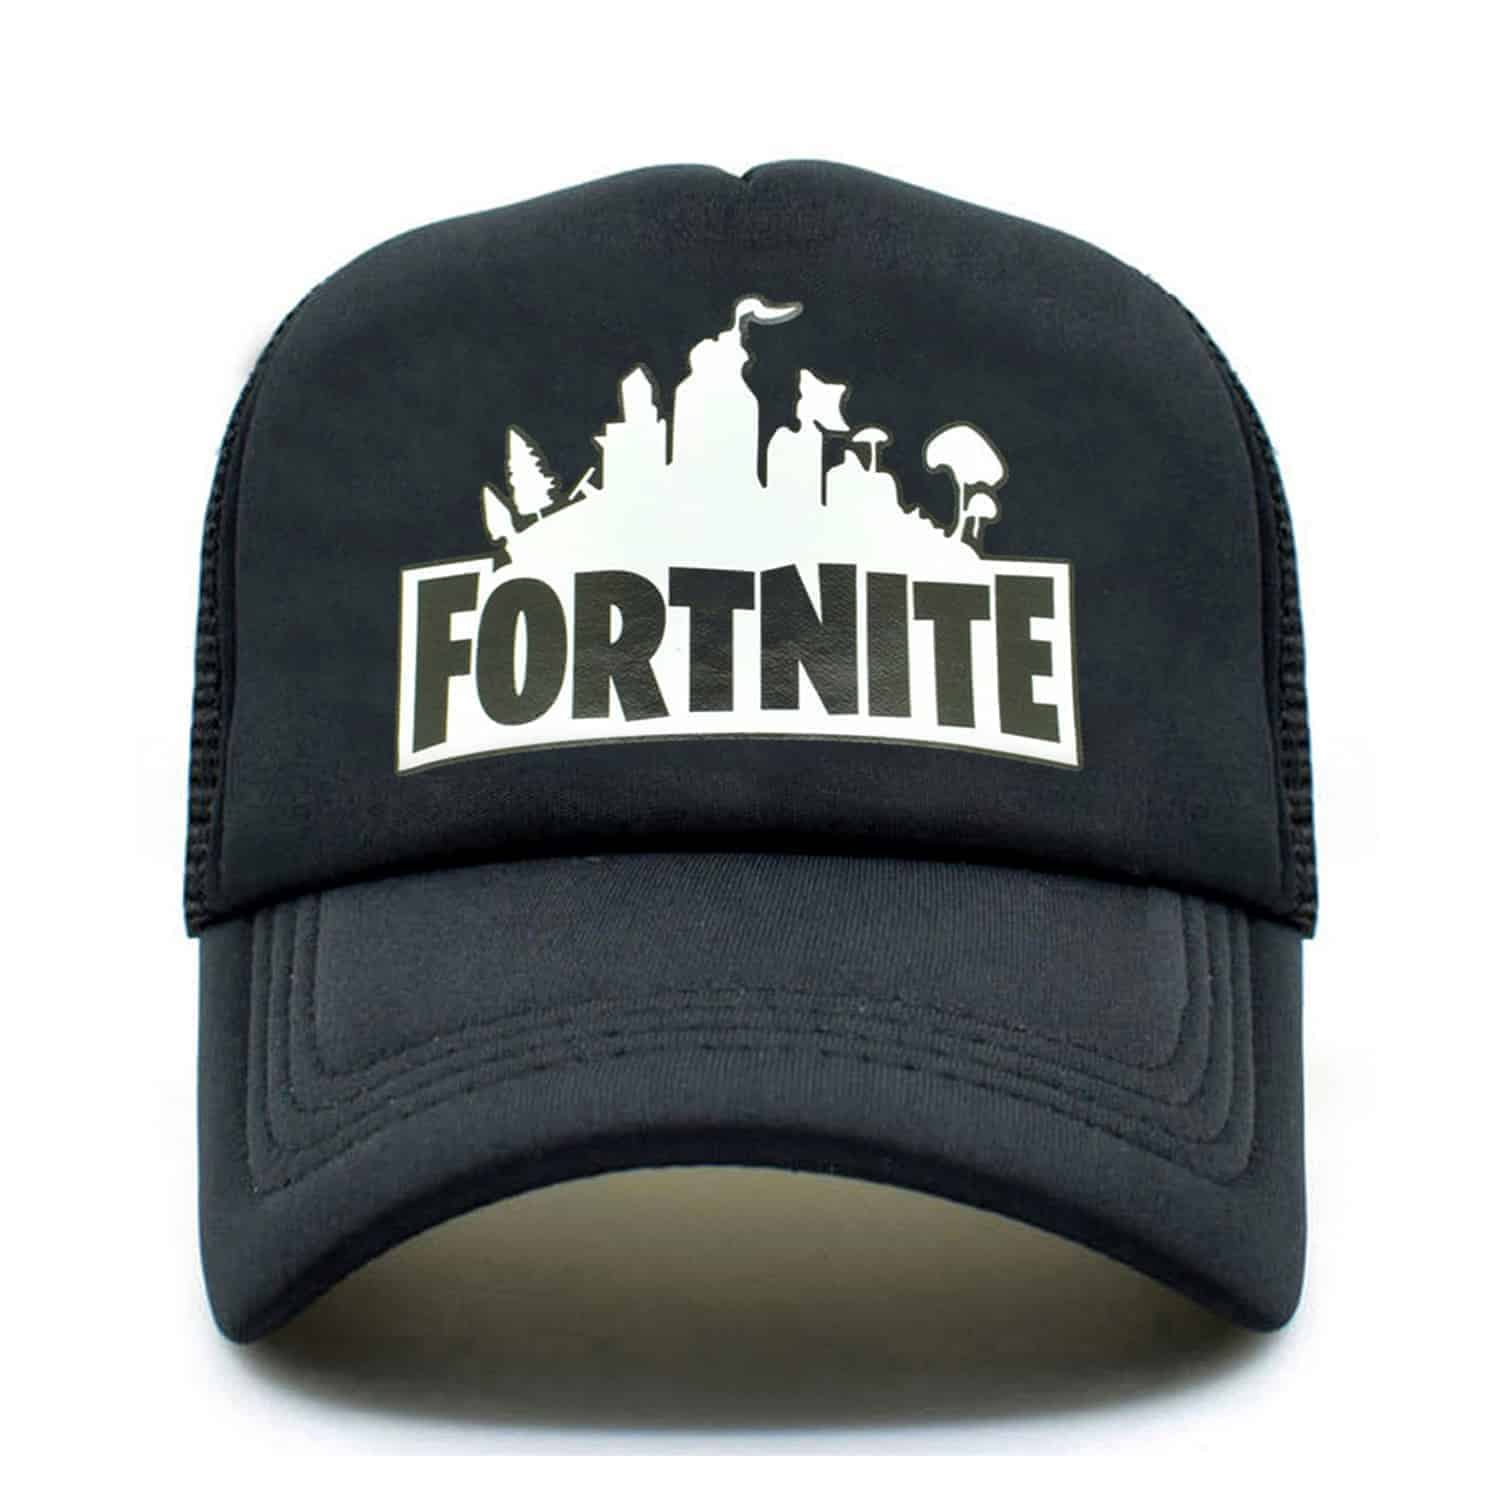 Buy Fortnite Cap AmazingMerch FREE Shipping